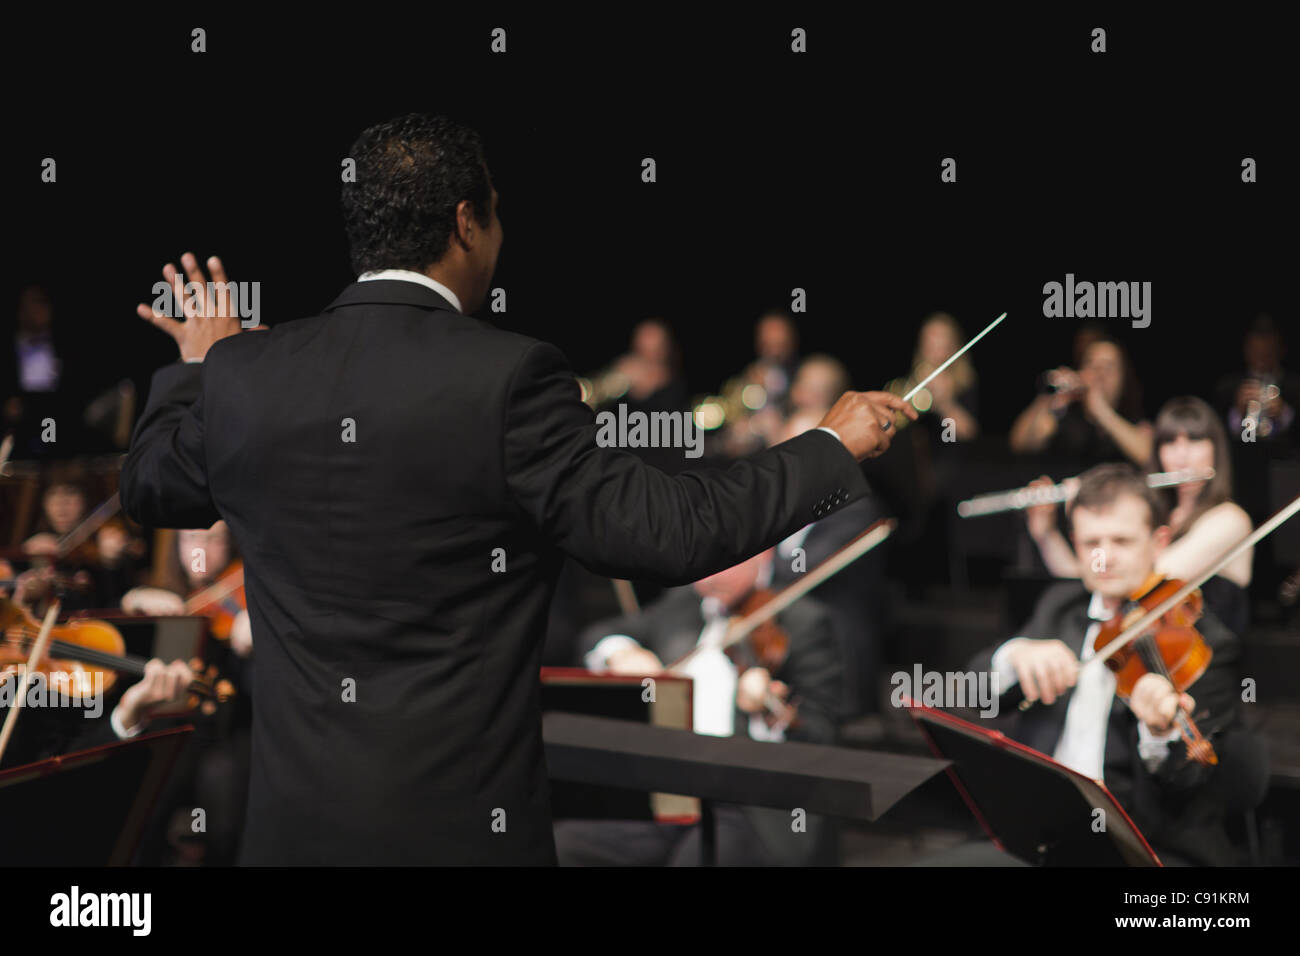 Conductor waving baton over orchestra - Stock Image